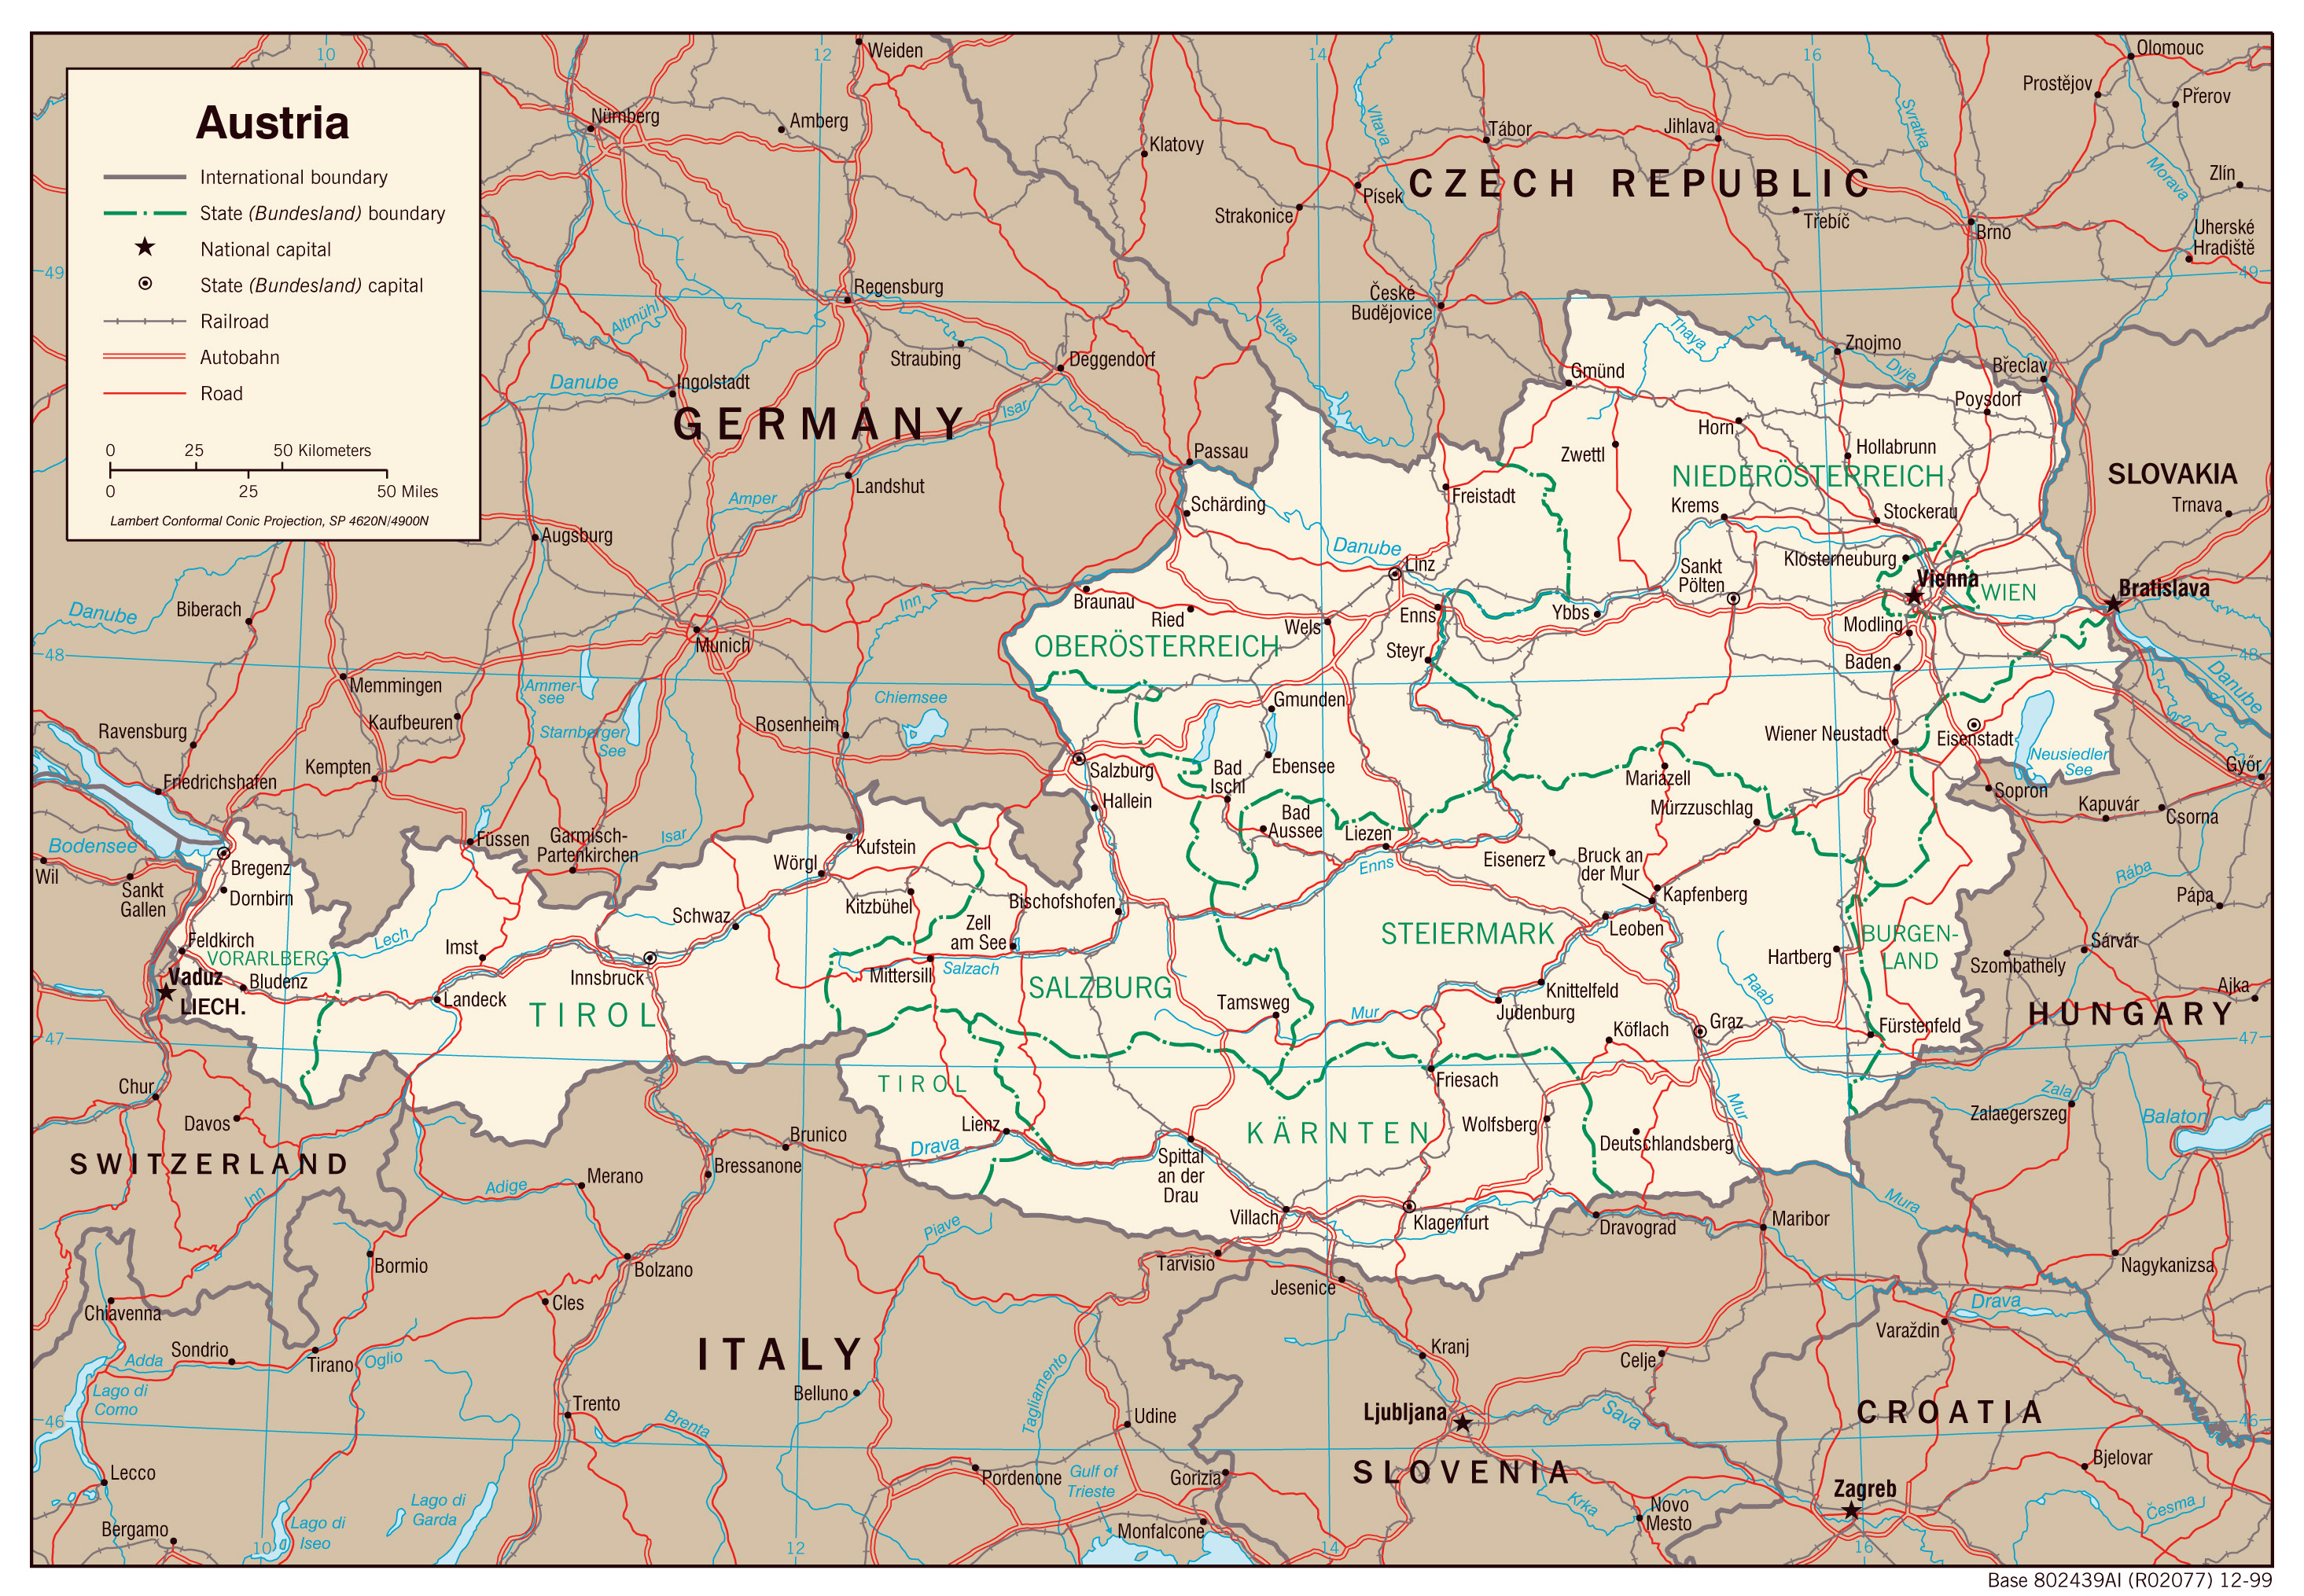 Large Detailed Political And Administrative Map Of Austria With - Austria major cities map